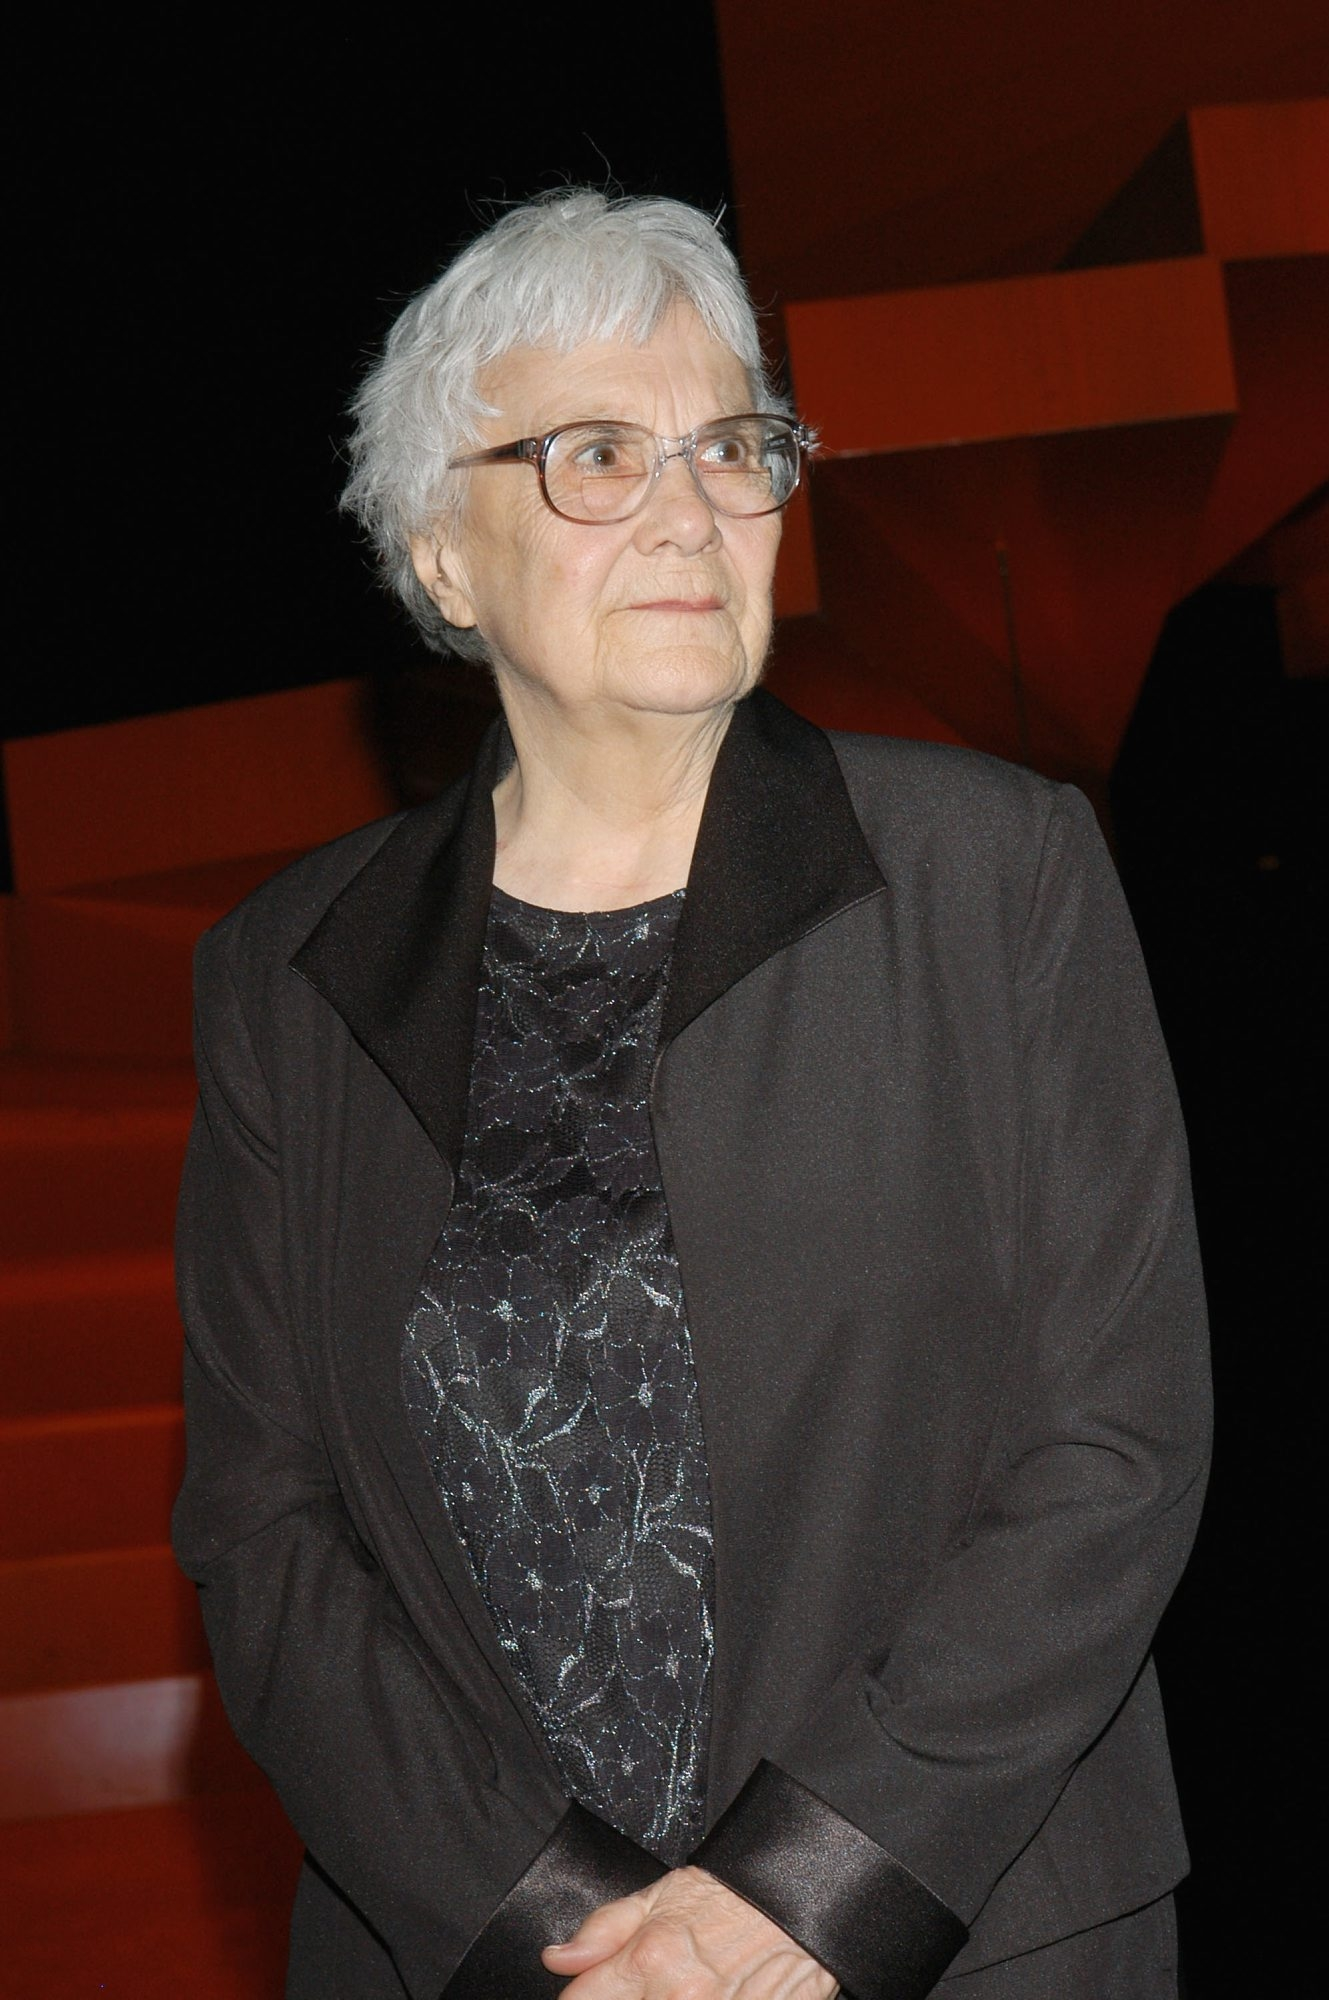 Harper Lee attends the Library Foundation of Los Angeles 2005 Awards Dinner honoring her.